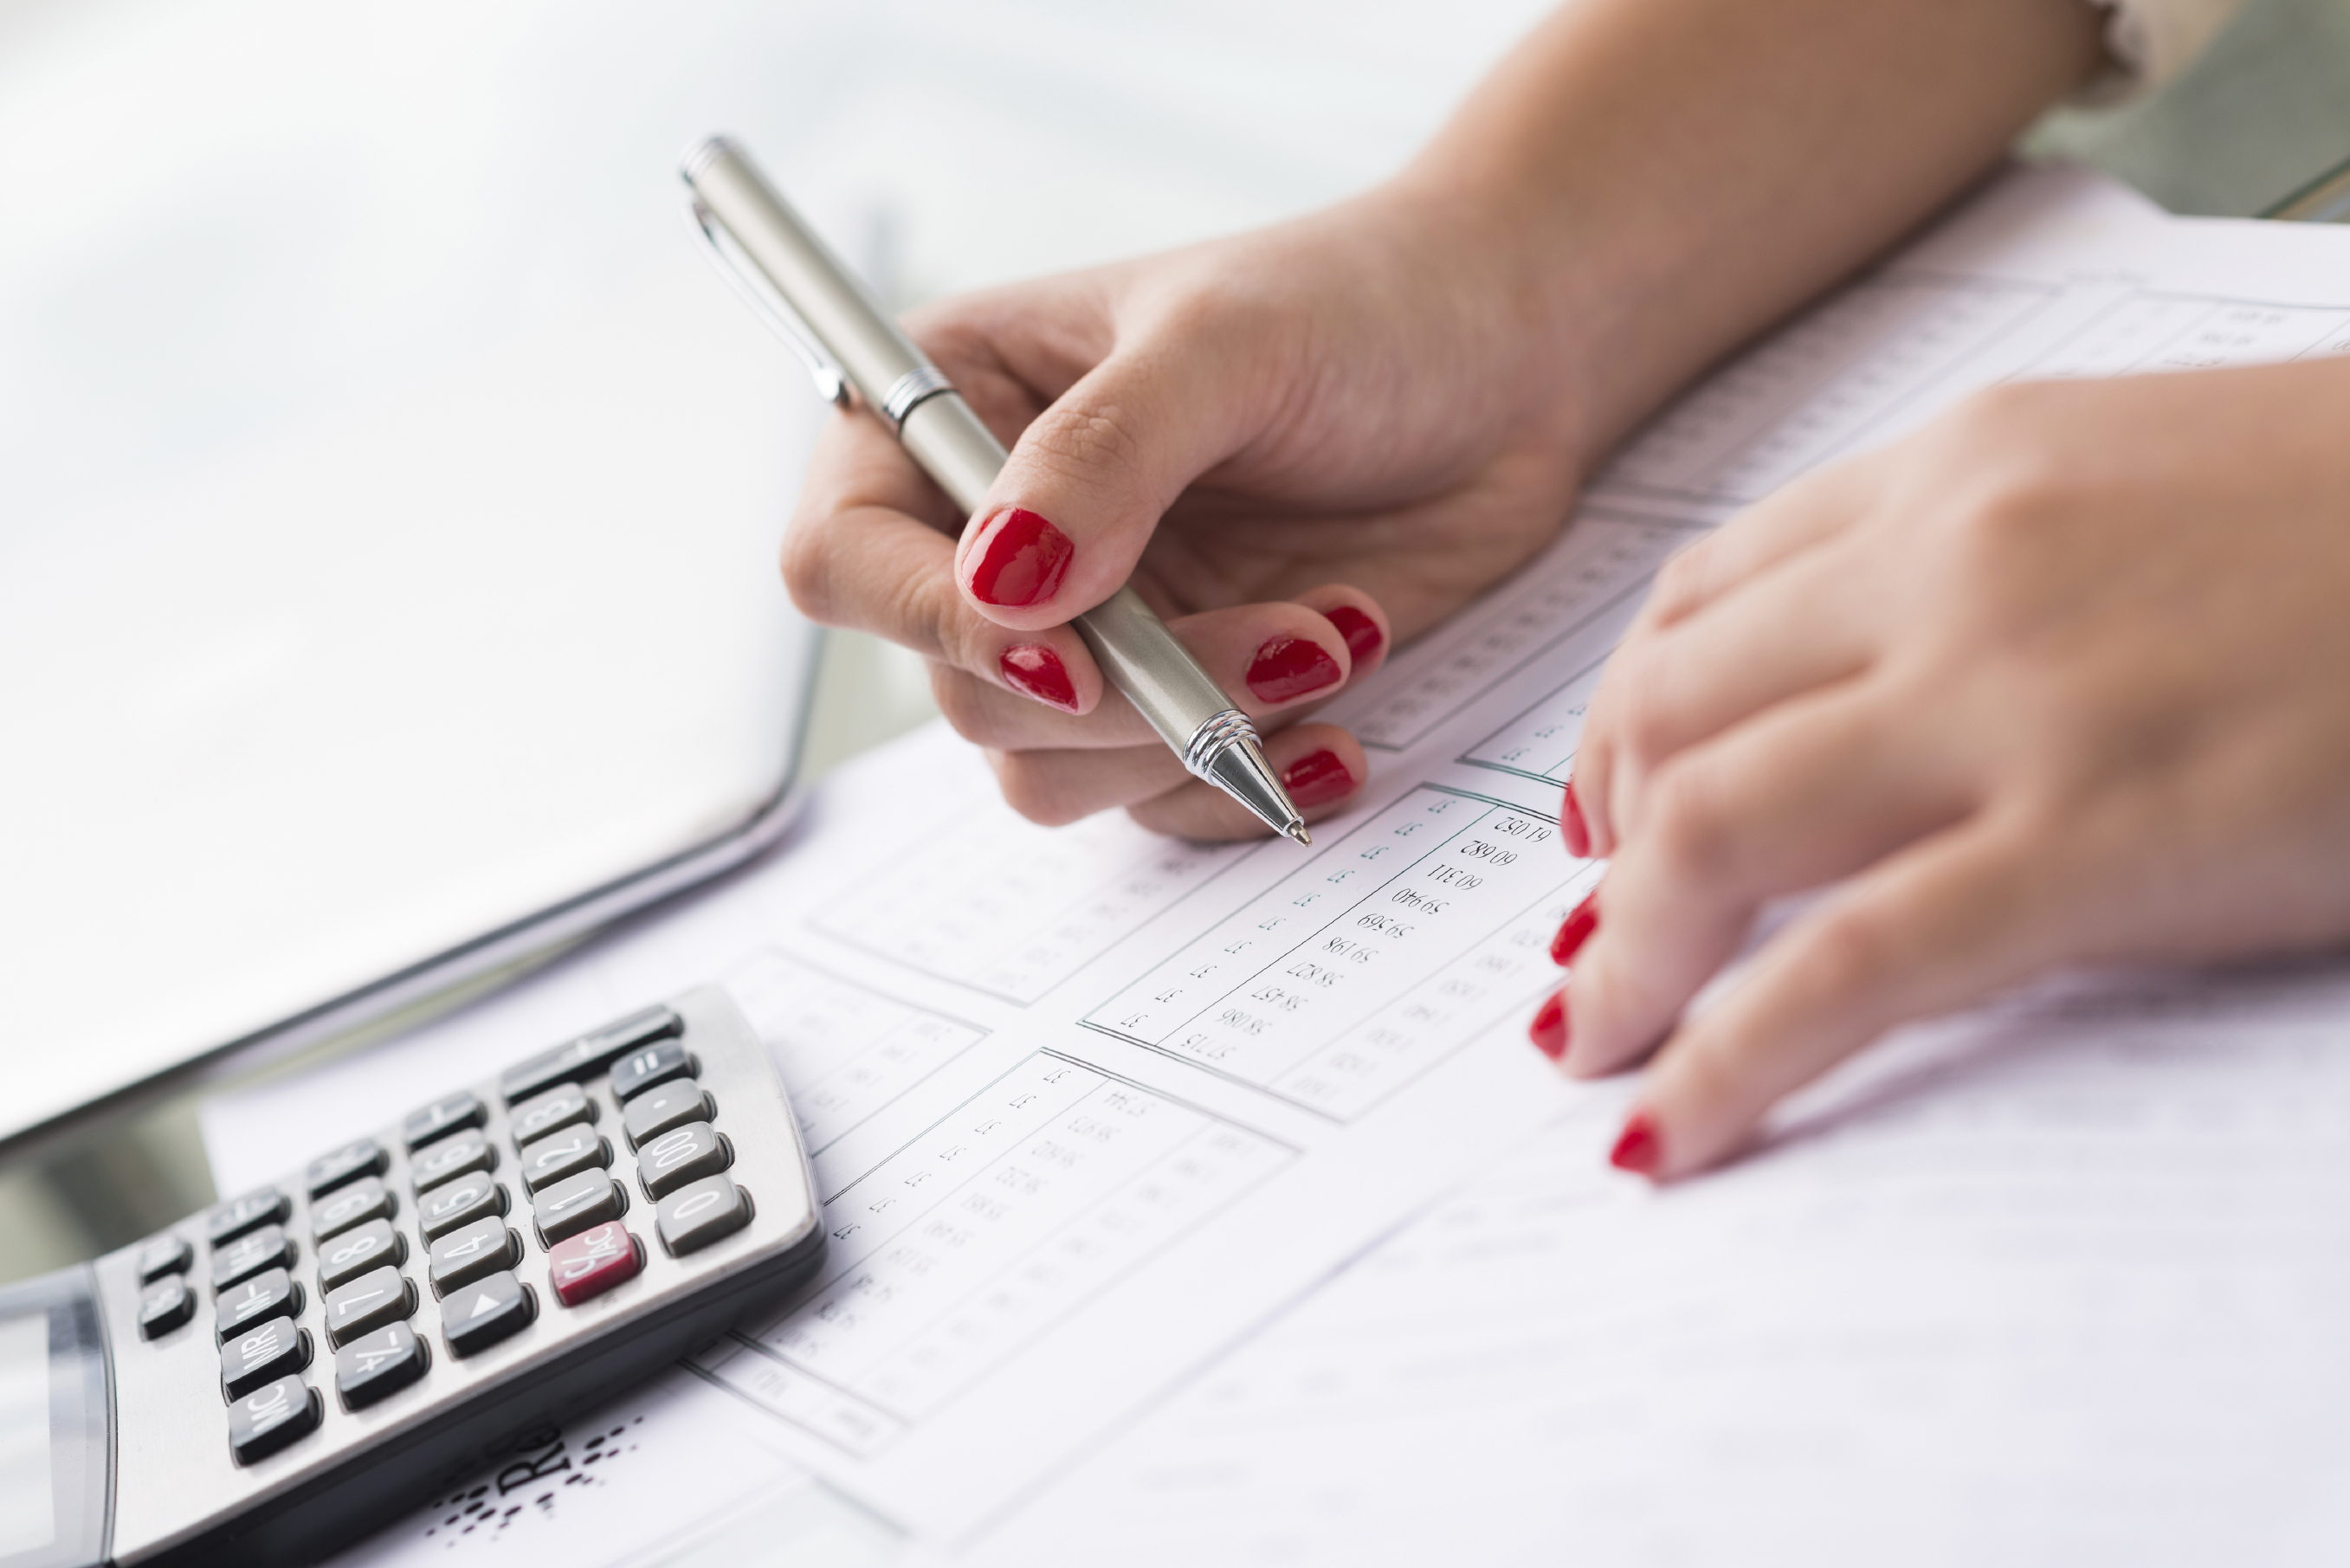 Use Our Online Finance Application!